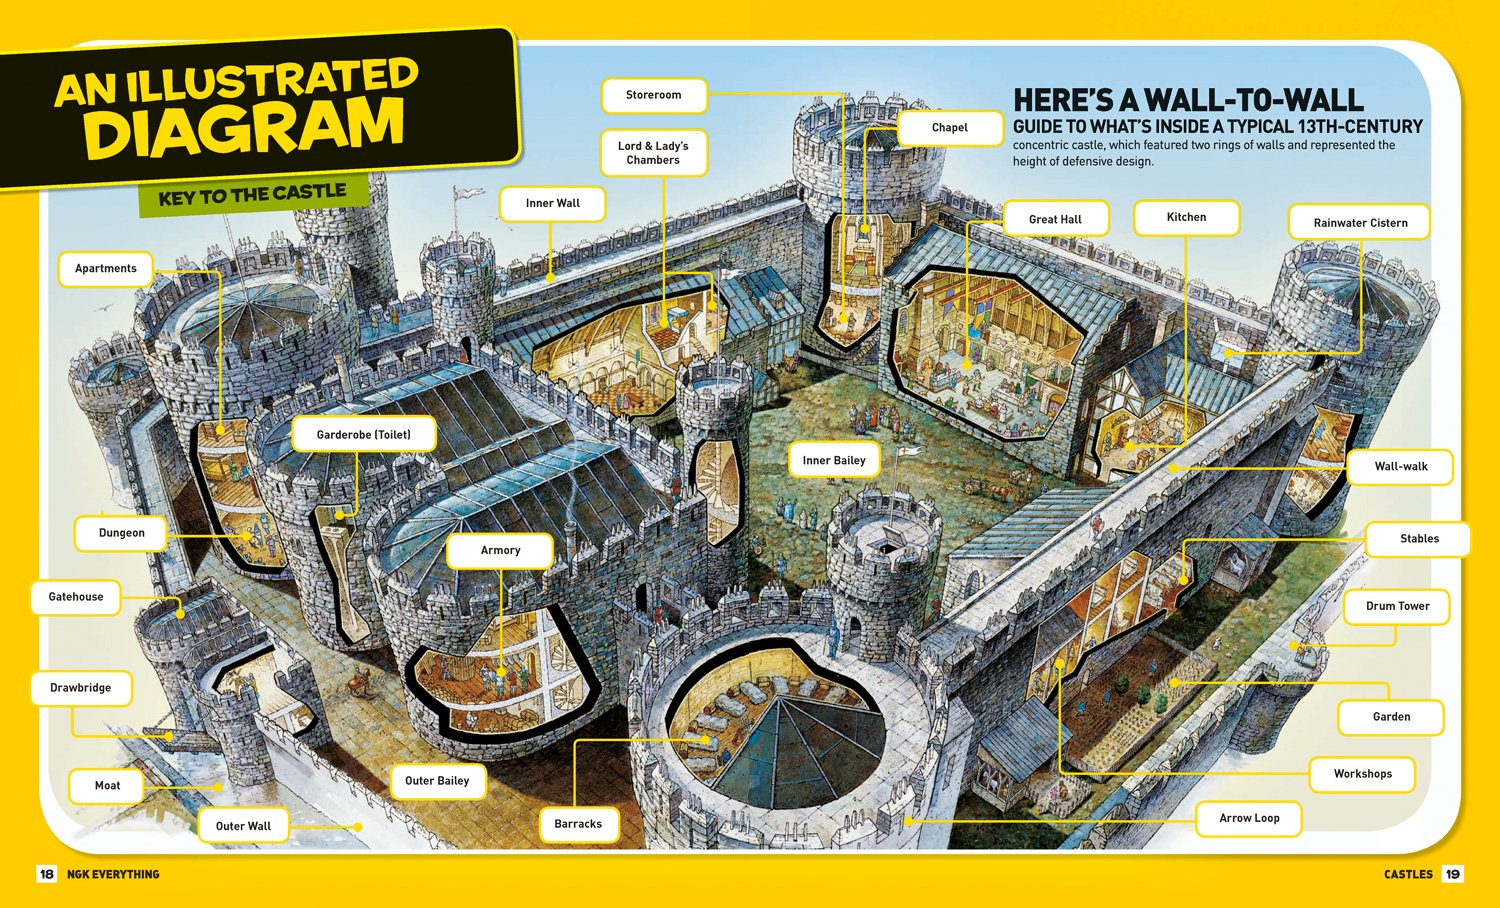 national geographic kids everything castles capture these facts